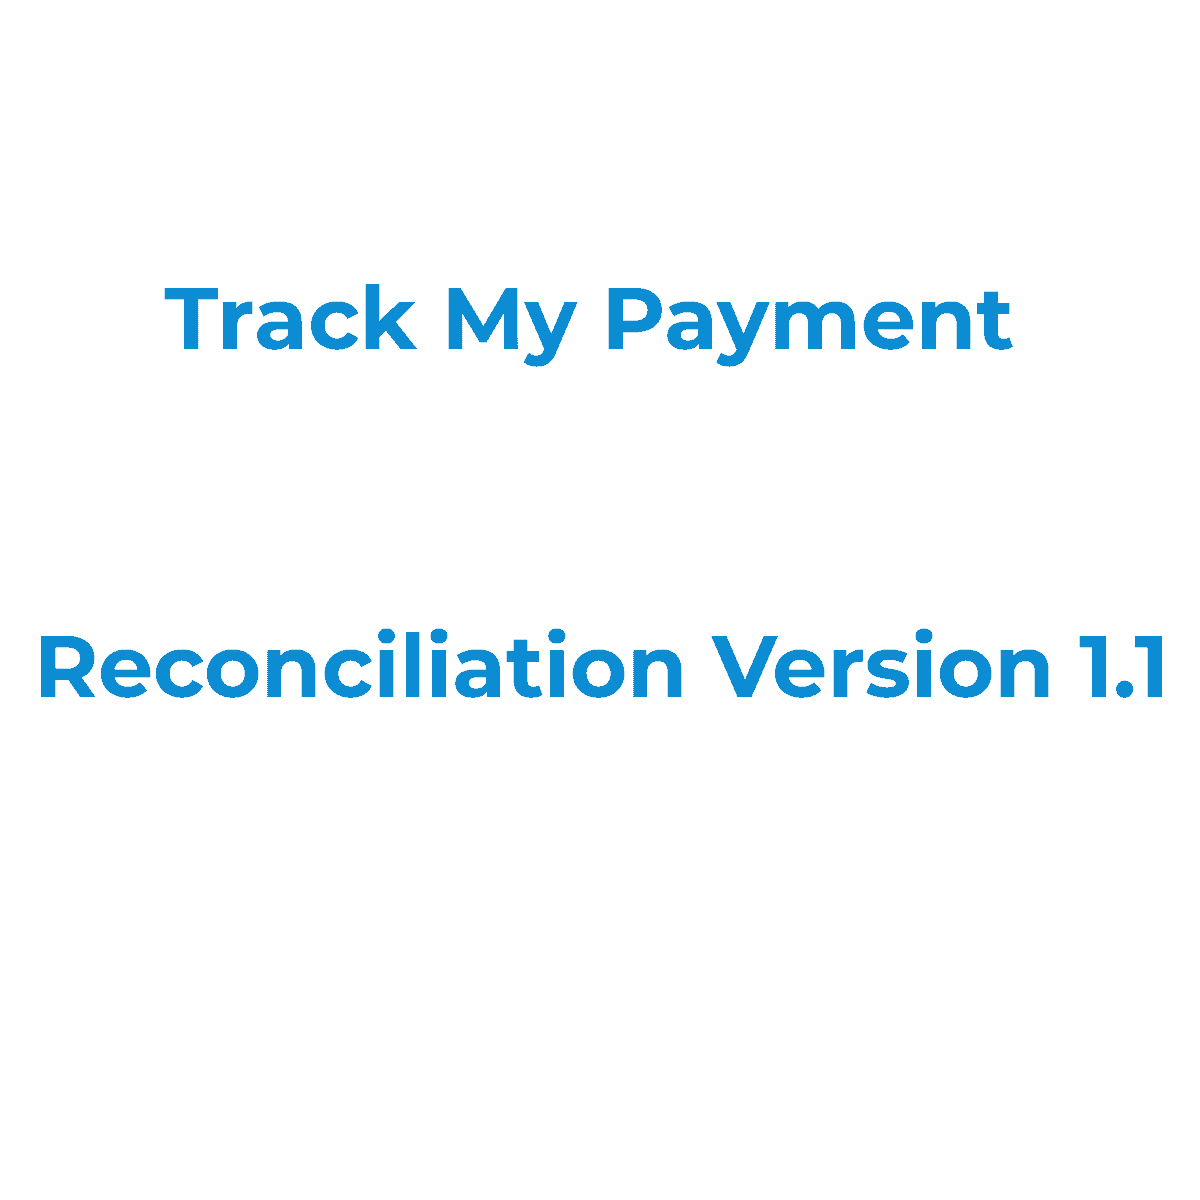 Track My Payment Reconciliation Version 1.1